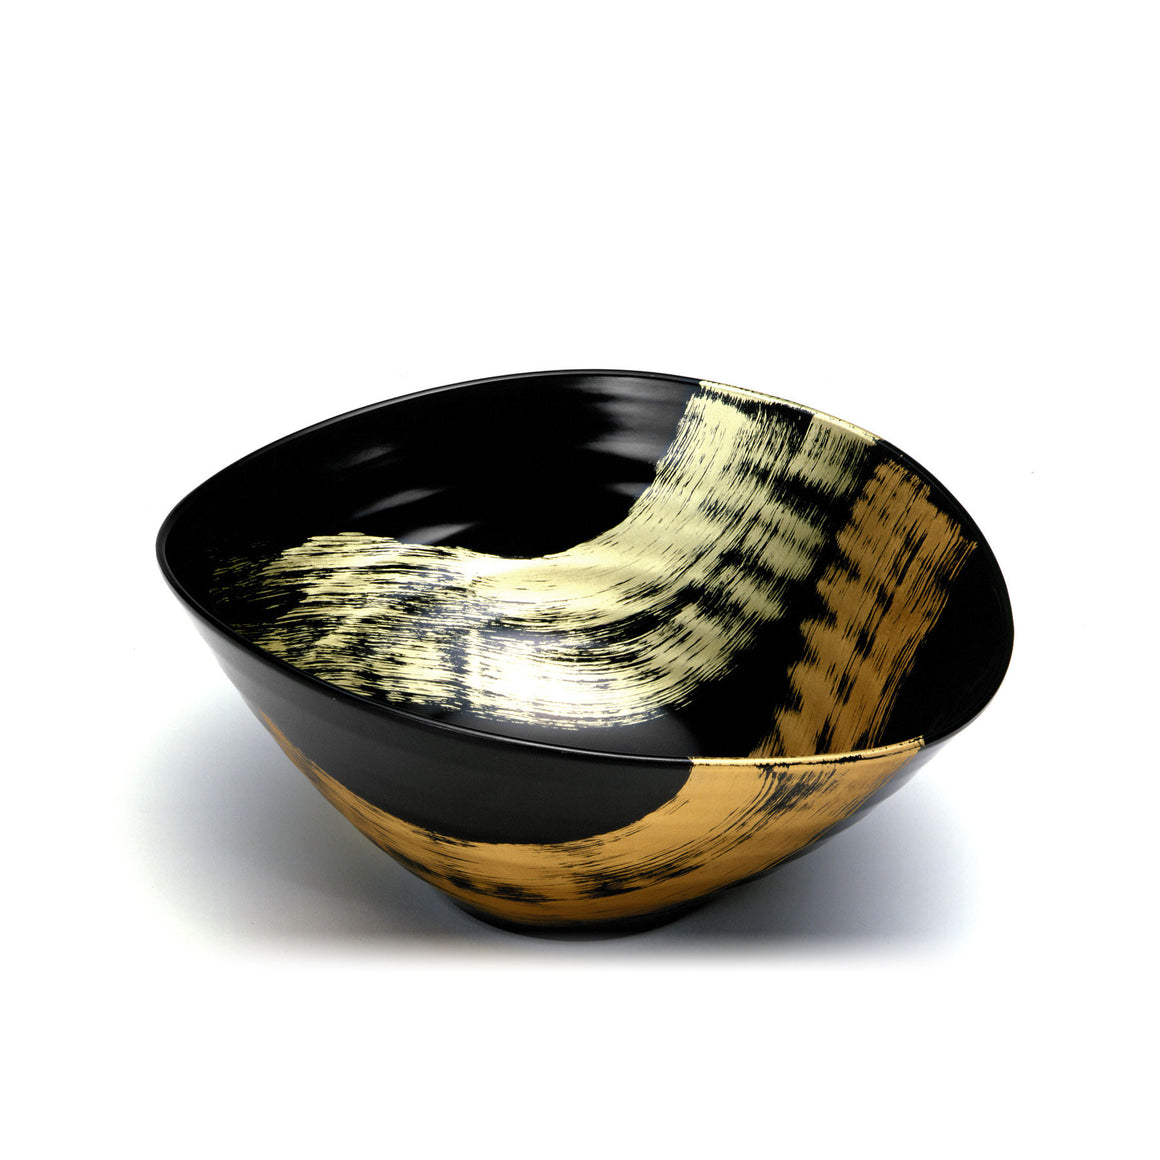 Sho-Ryu Salad Bowl